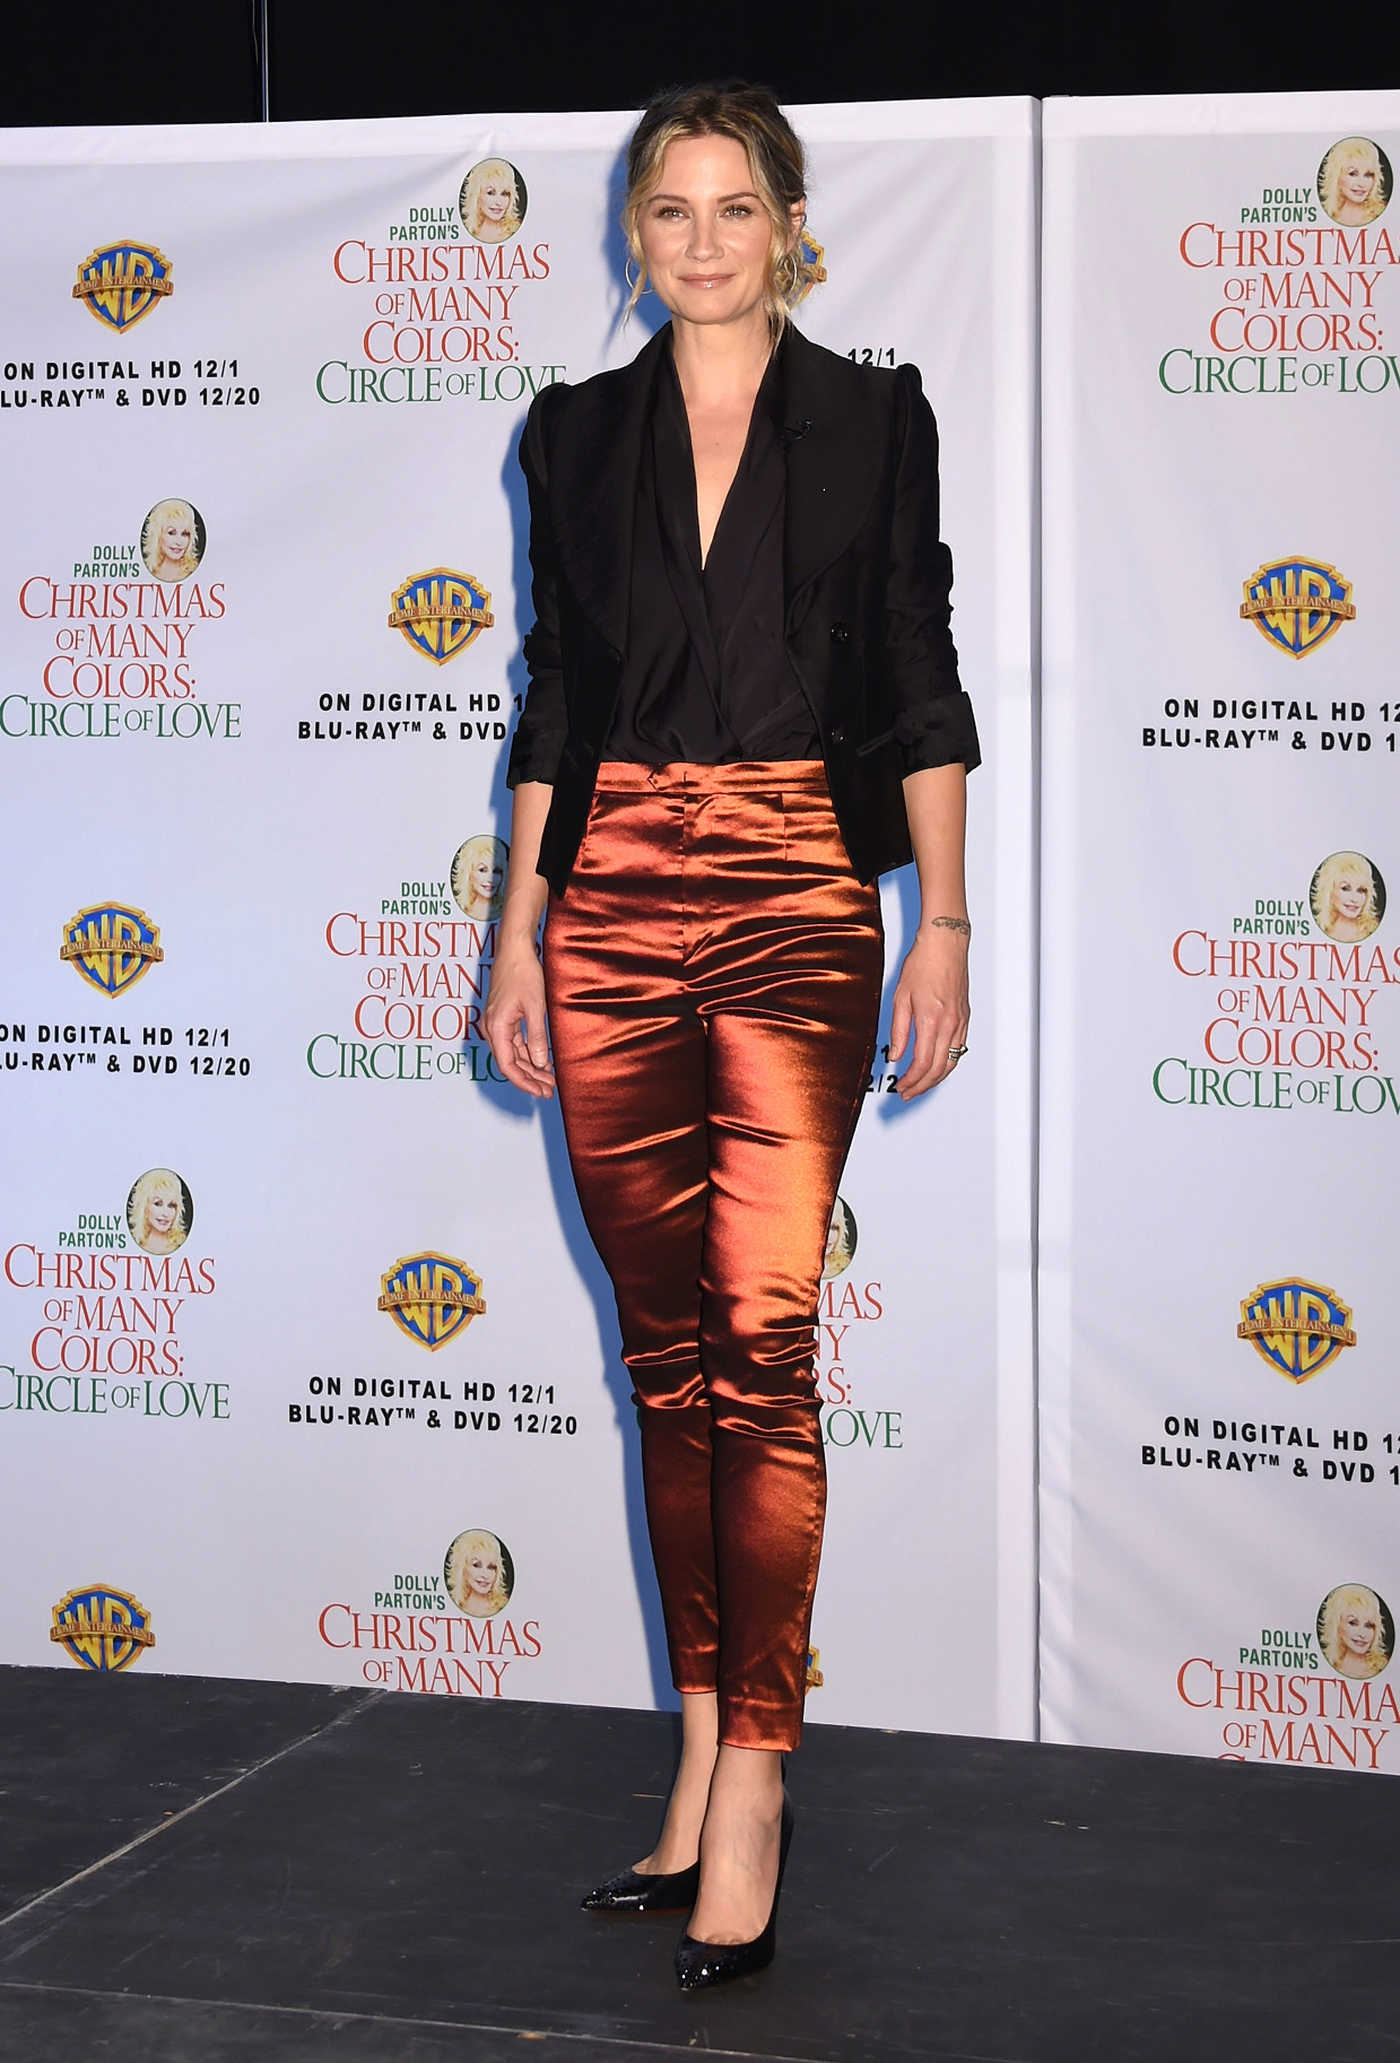 Jennifer Nettles at the Christmas of Many Colors: Circle of Love Press Conference in Nashville 11/03/2016